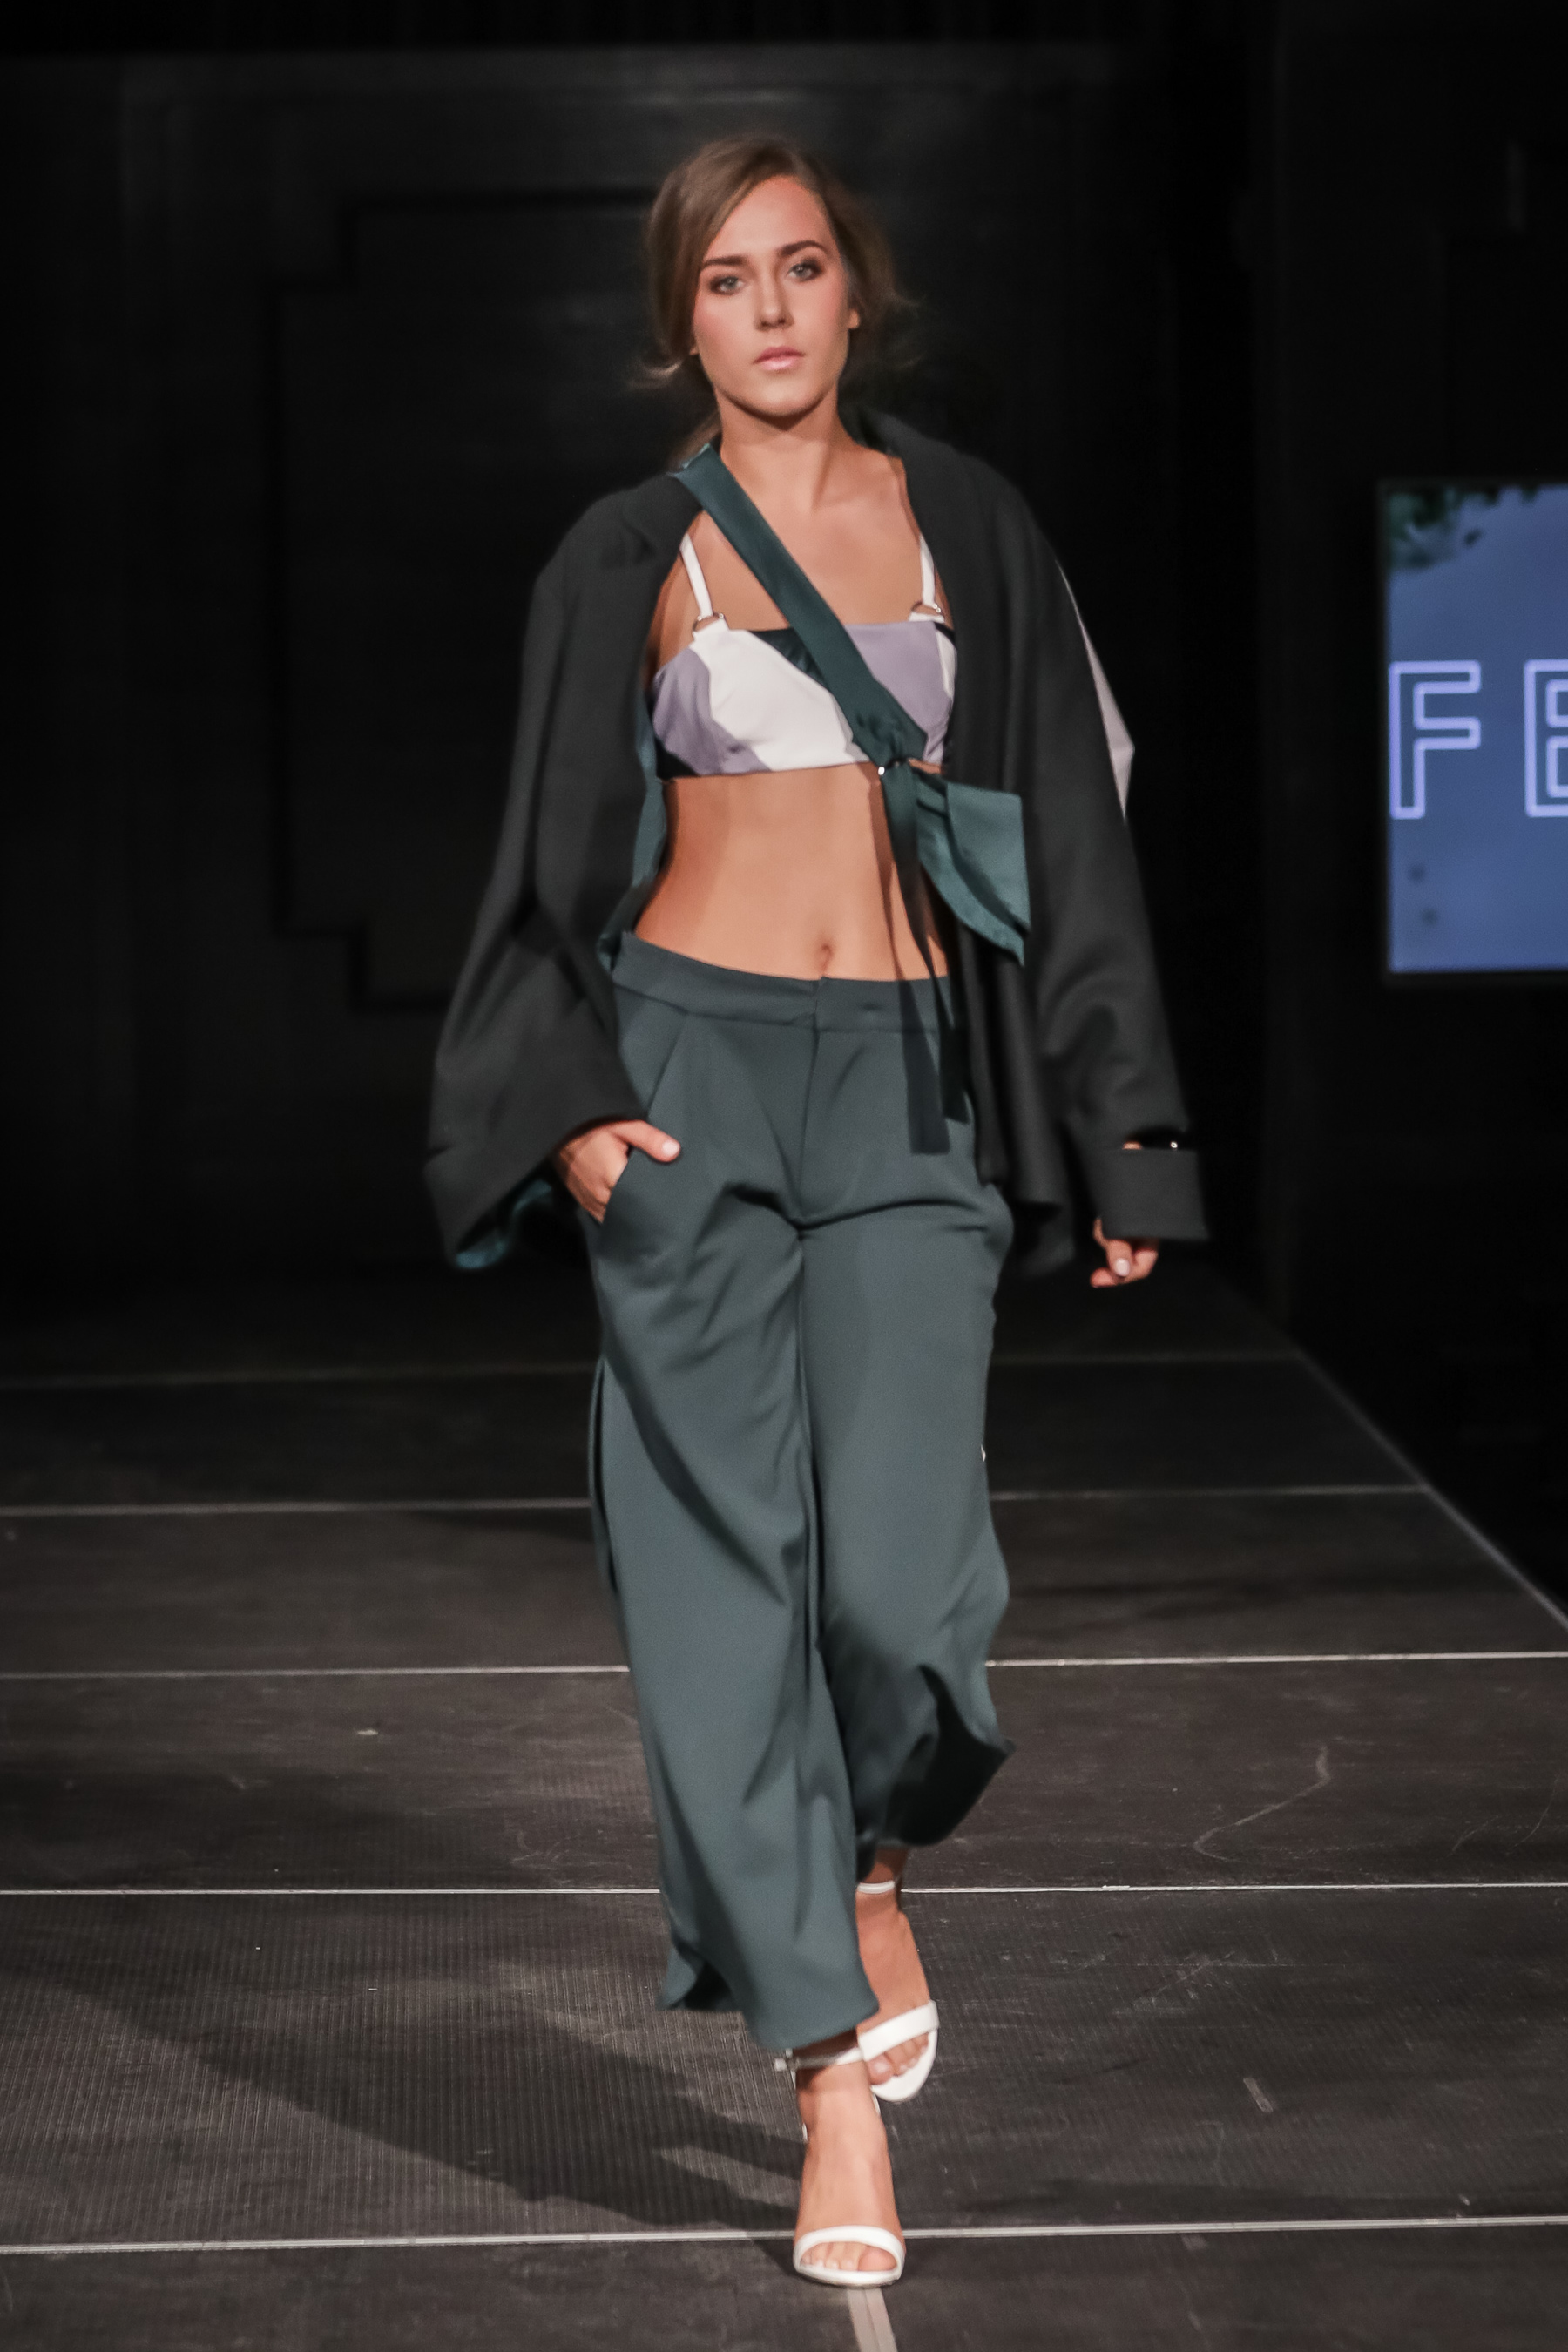 FERRAH SS 18 Look 7 -  i :  Frida Wrap Jacket    ii : Nara Bralette Topiii : Georgia Draped Culotte